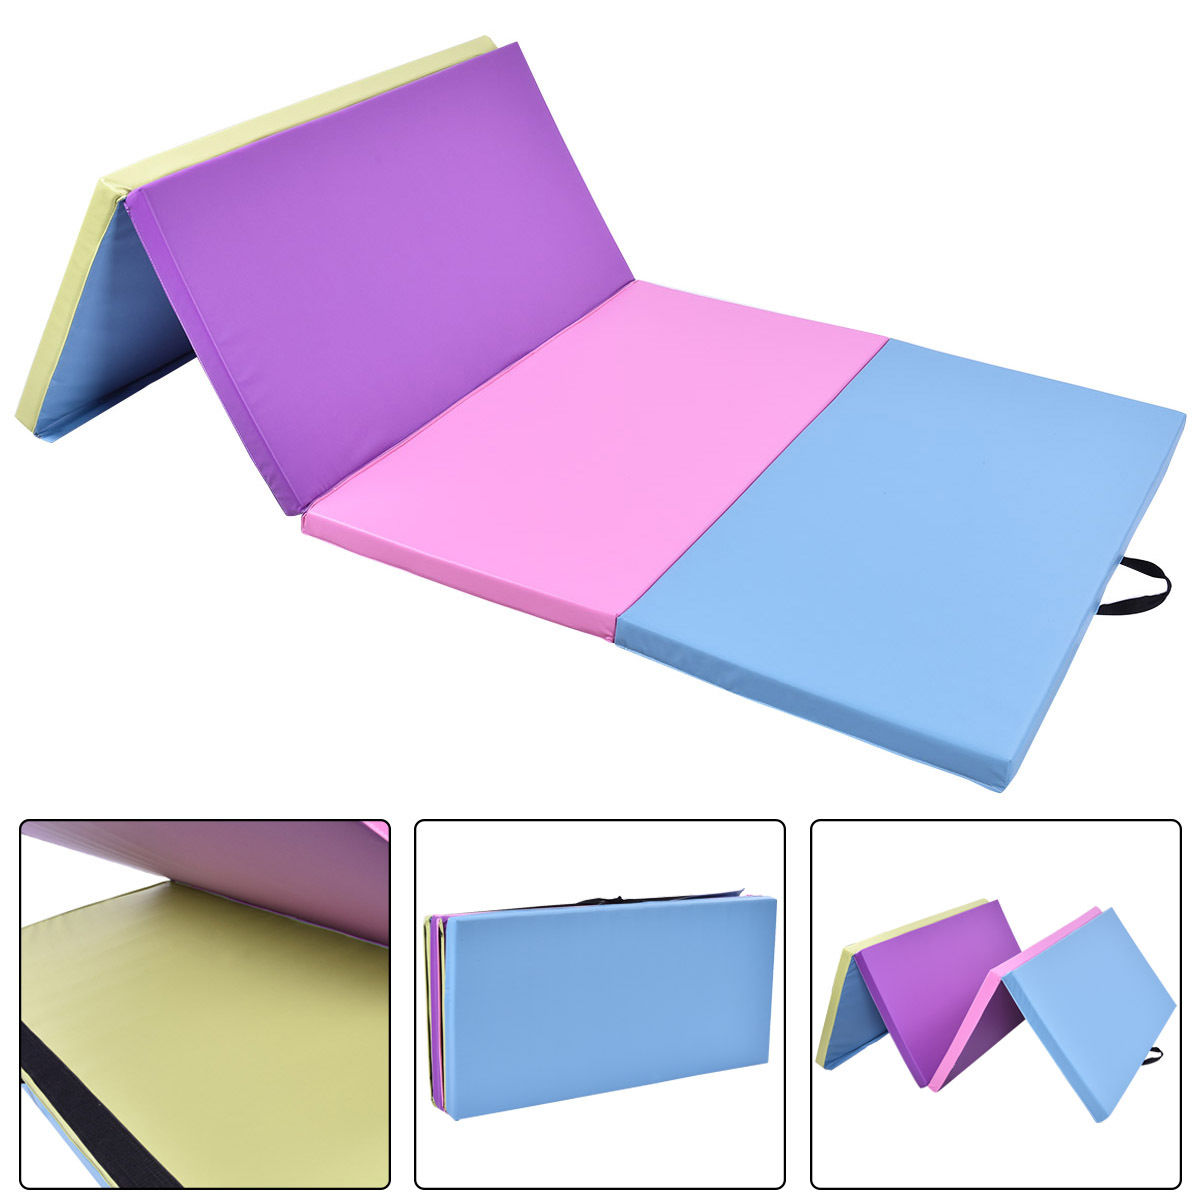 Costway 4'x8'x2'' Gymnastics Mat Folding PU Panel  Exercise Multi-Colors 2016 New